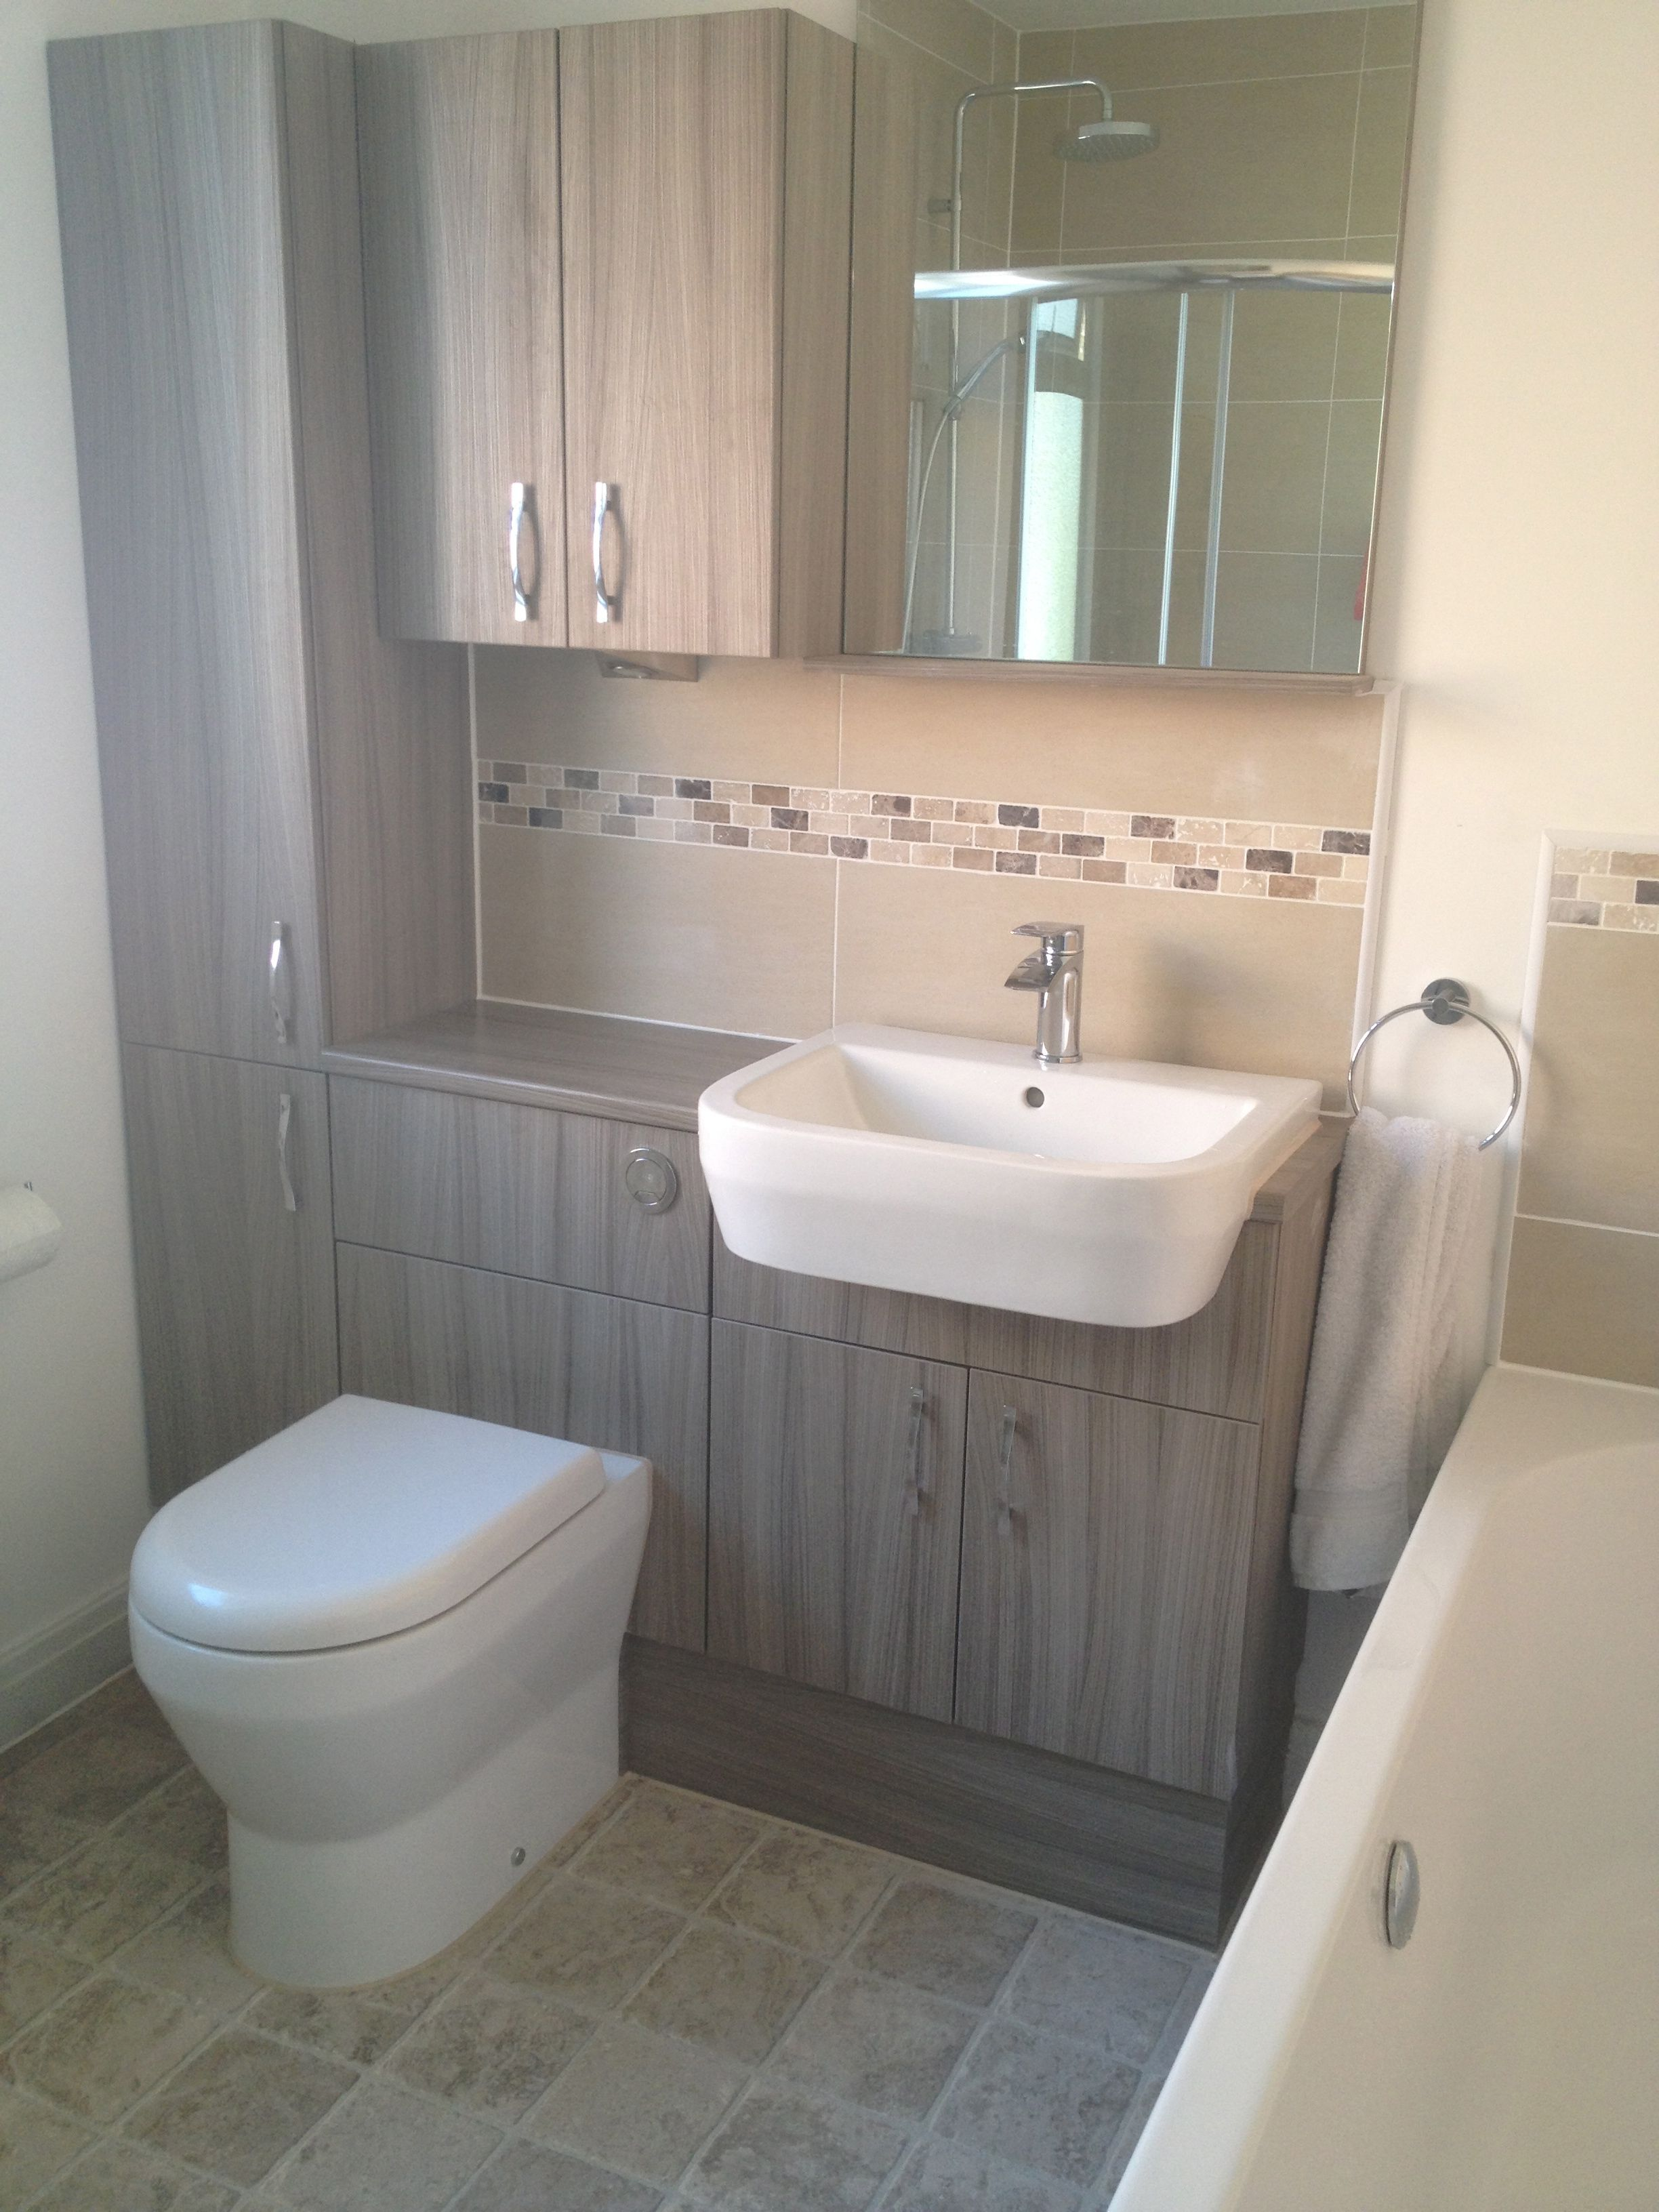 Modular Bathroom Unit Installation By Uk Bathroom Guru See More Http Ukbathroomguru Com Fitted Bathroom Bathroom Design Small Bathroom Inspiration